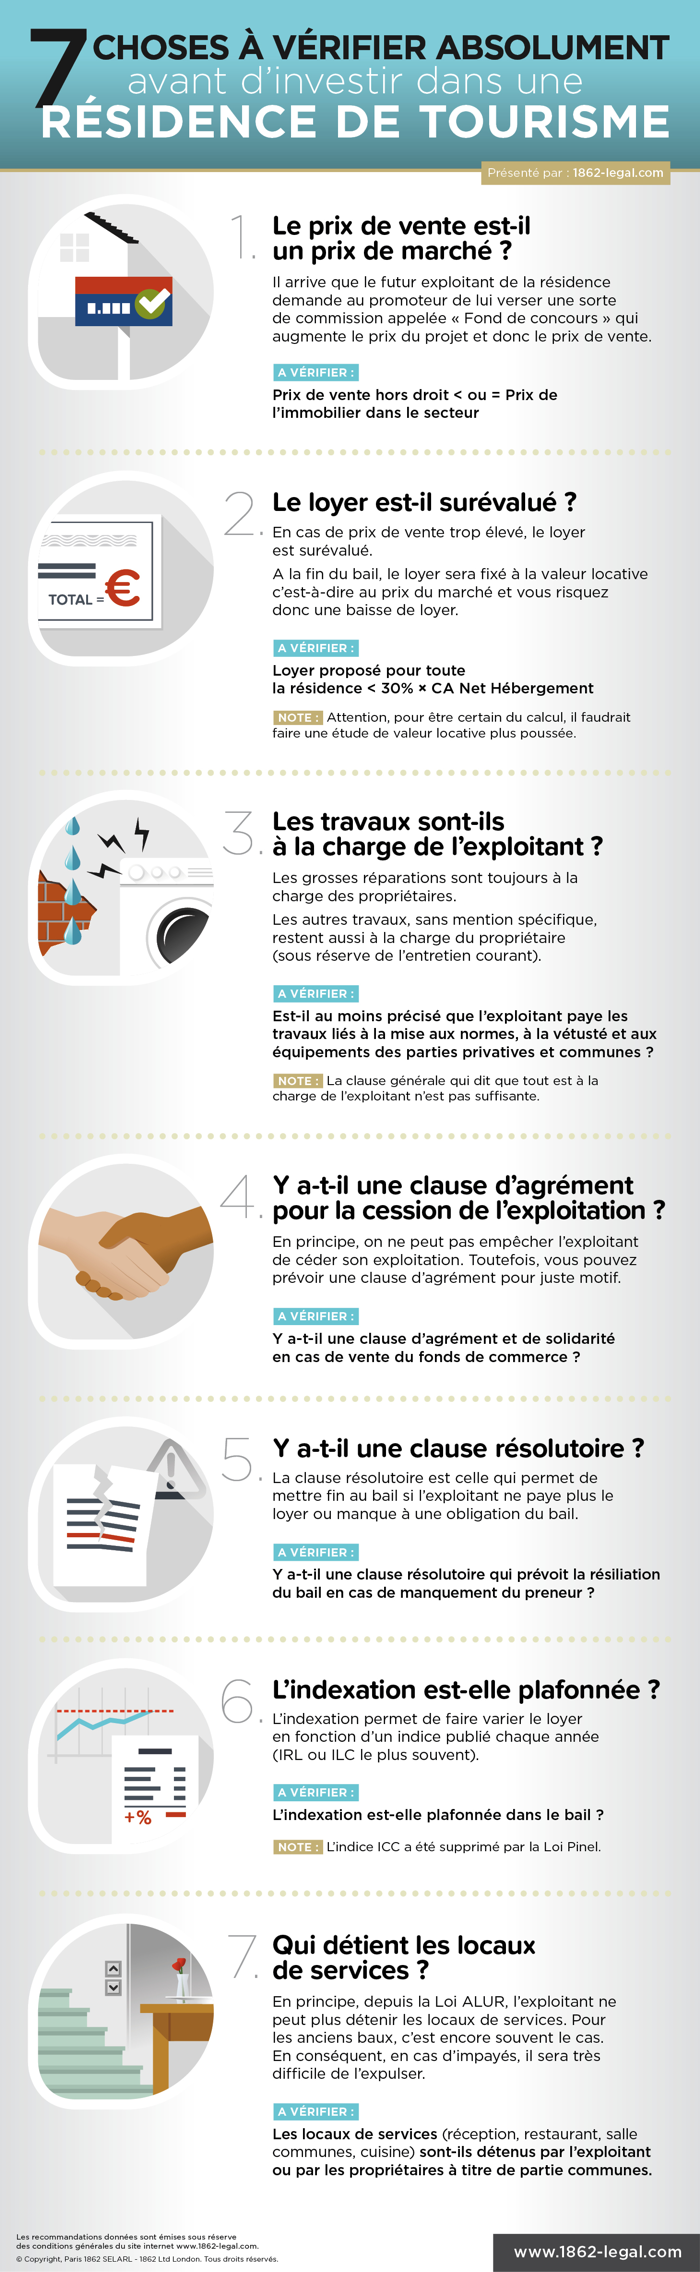 7_choses_residence_tourisme_700px.png